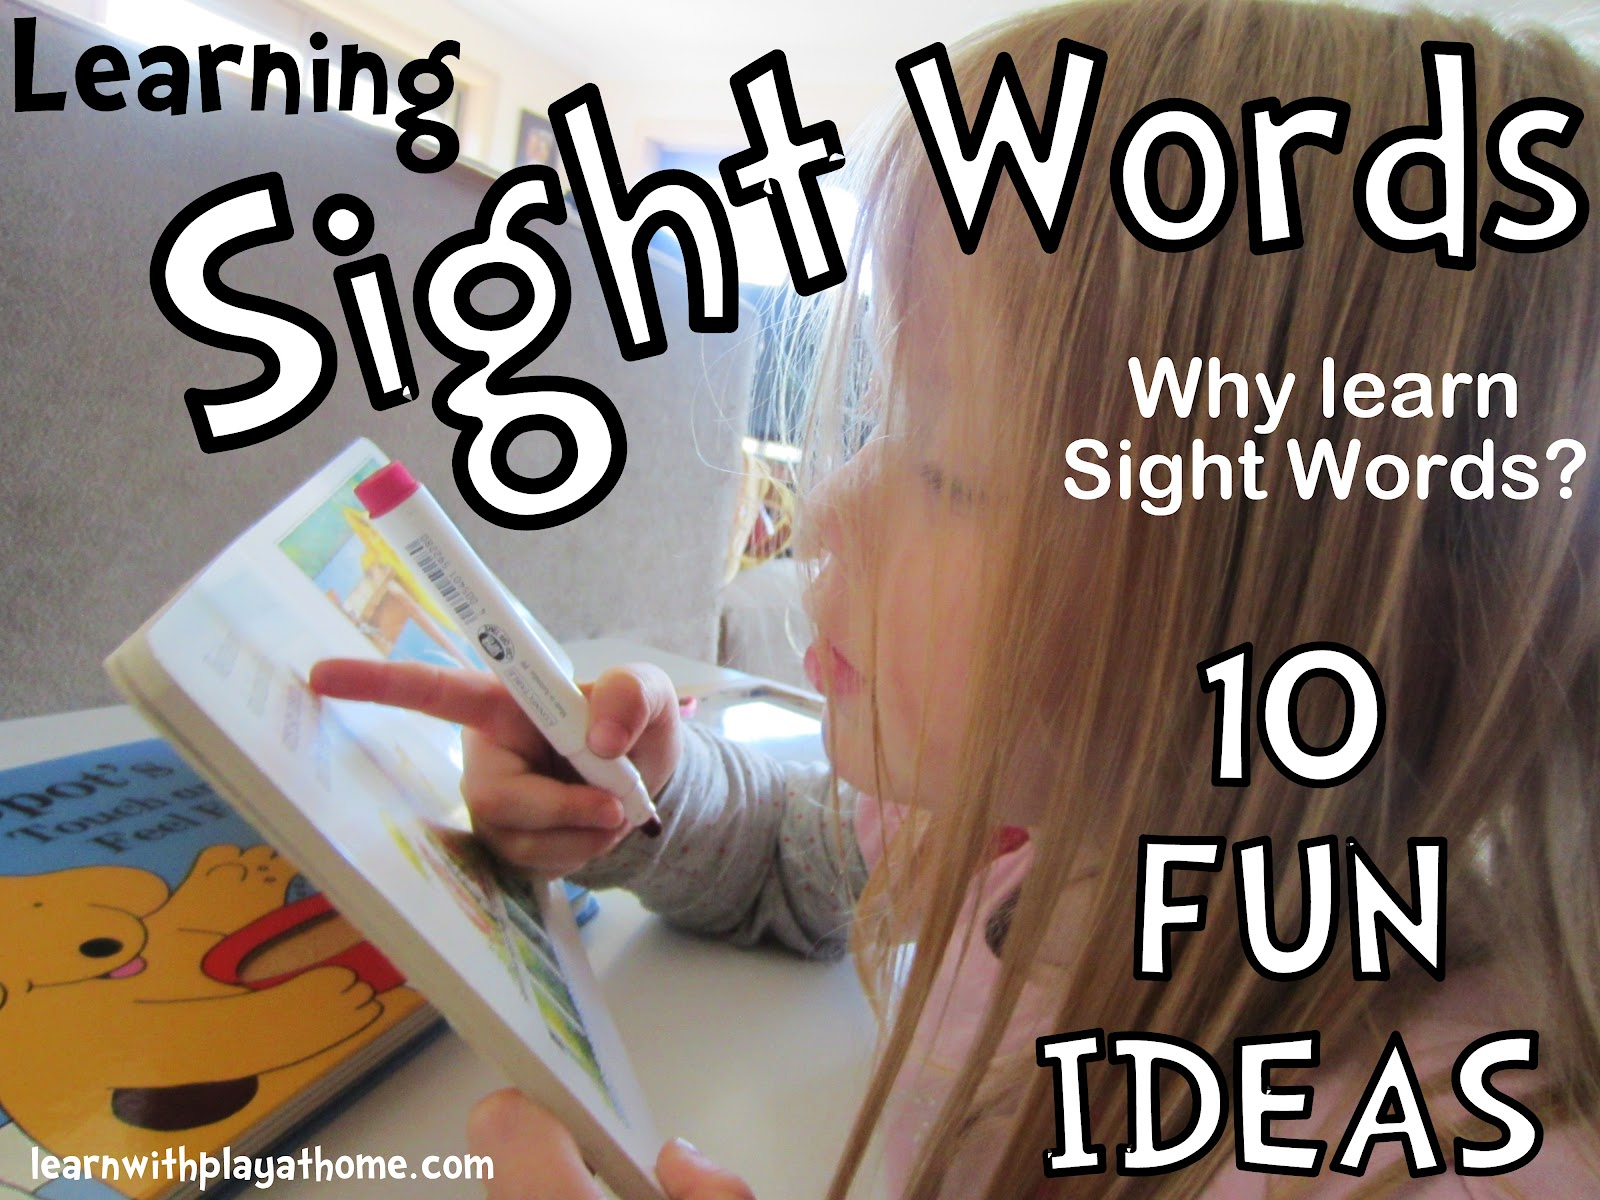 Teaching Sight Words - Strategies for Parents and Teachers